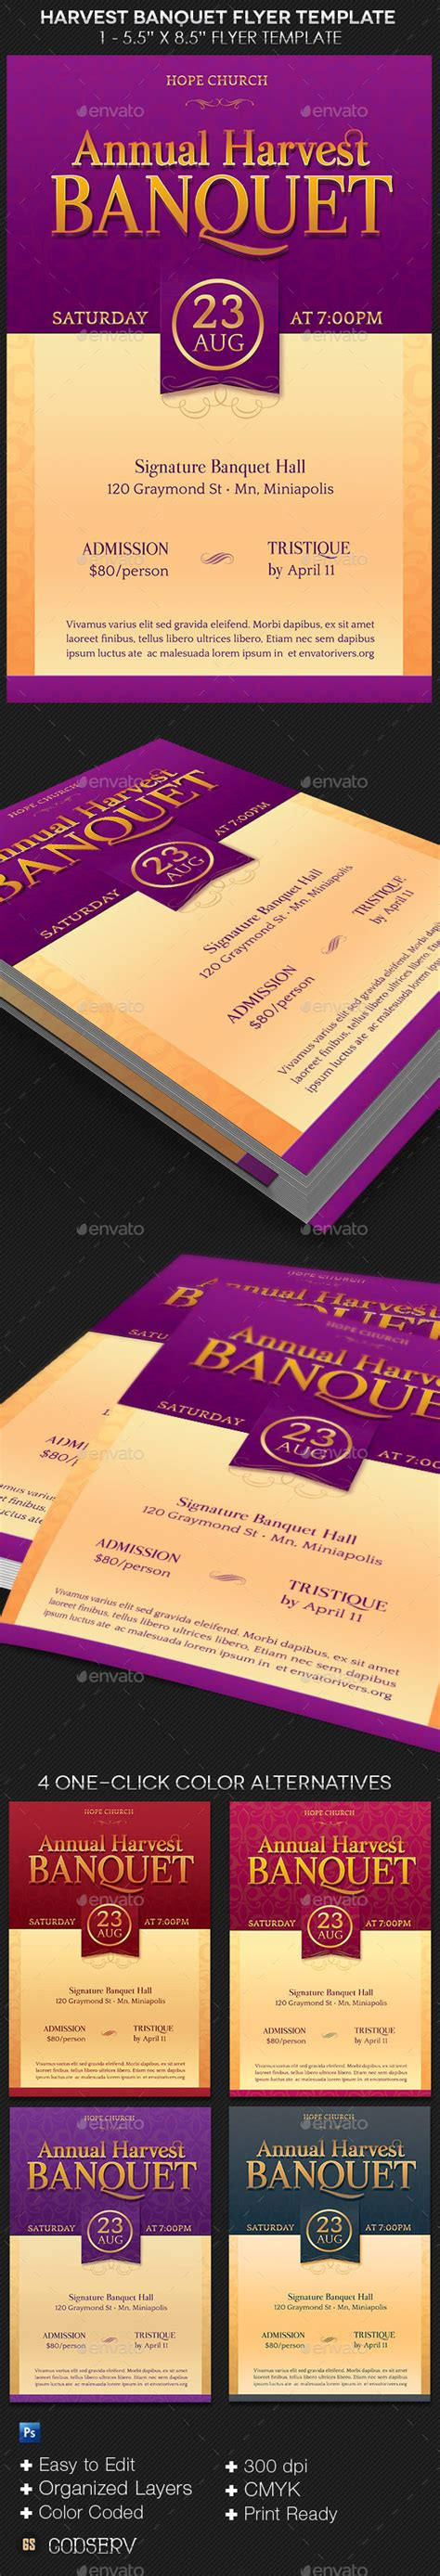 Harvest Banquet Flyer Template By Godserv Graphicriver Banquet Website Templates Free